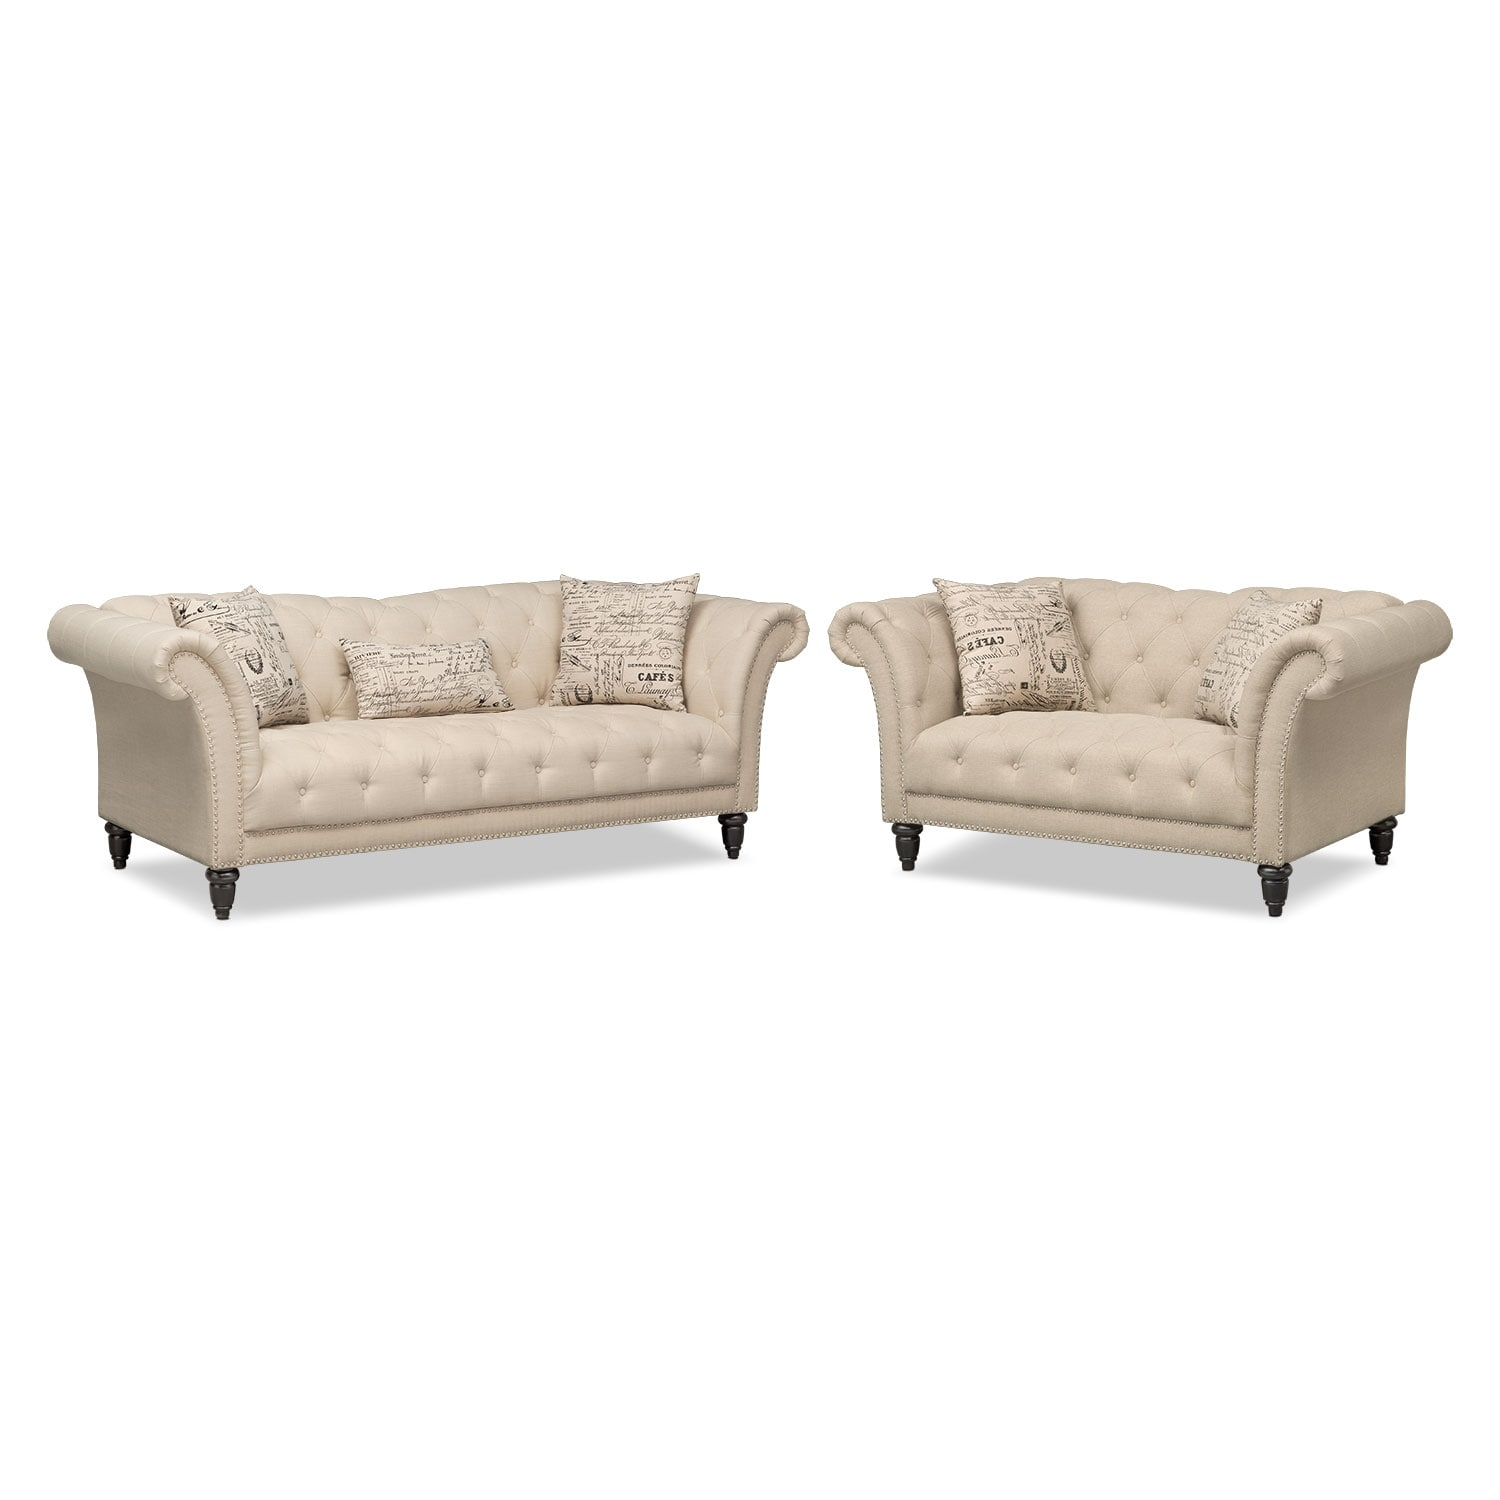 Living Room Furniture - Marisol Sofa and Loveseat